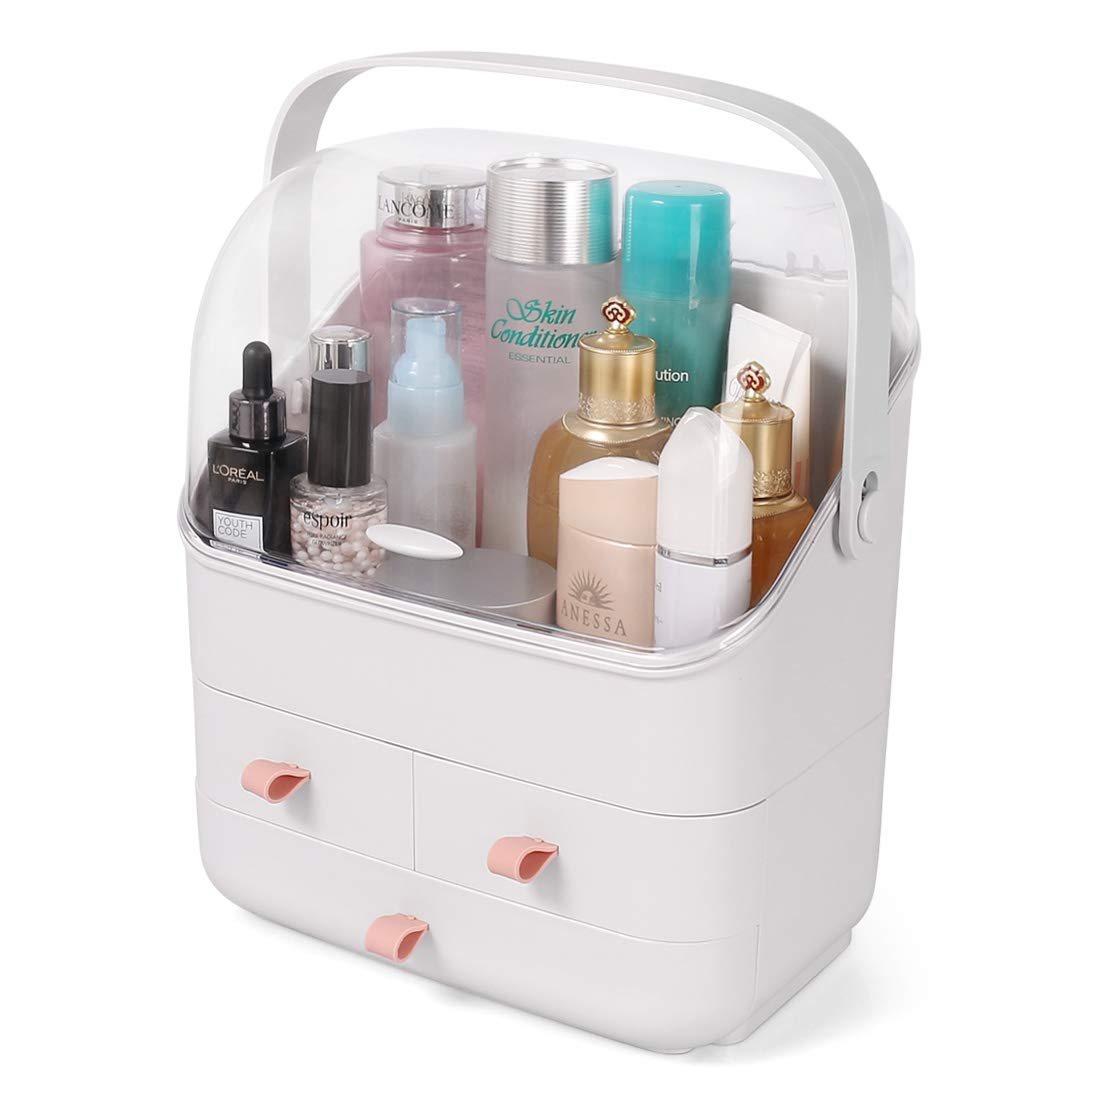 Makeup Organizer Box, Cosmetic Storage Box with Drawers, Handle, Fully Open Waterproof Dustproof Lid, Great for Bathroom, Dresser, Vanity and Countertop